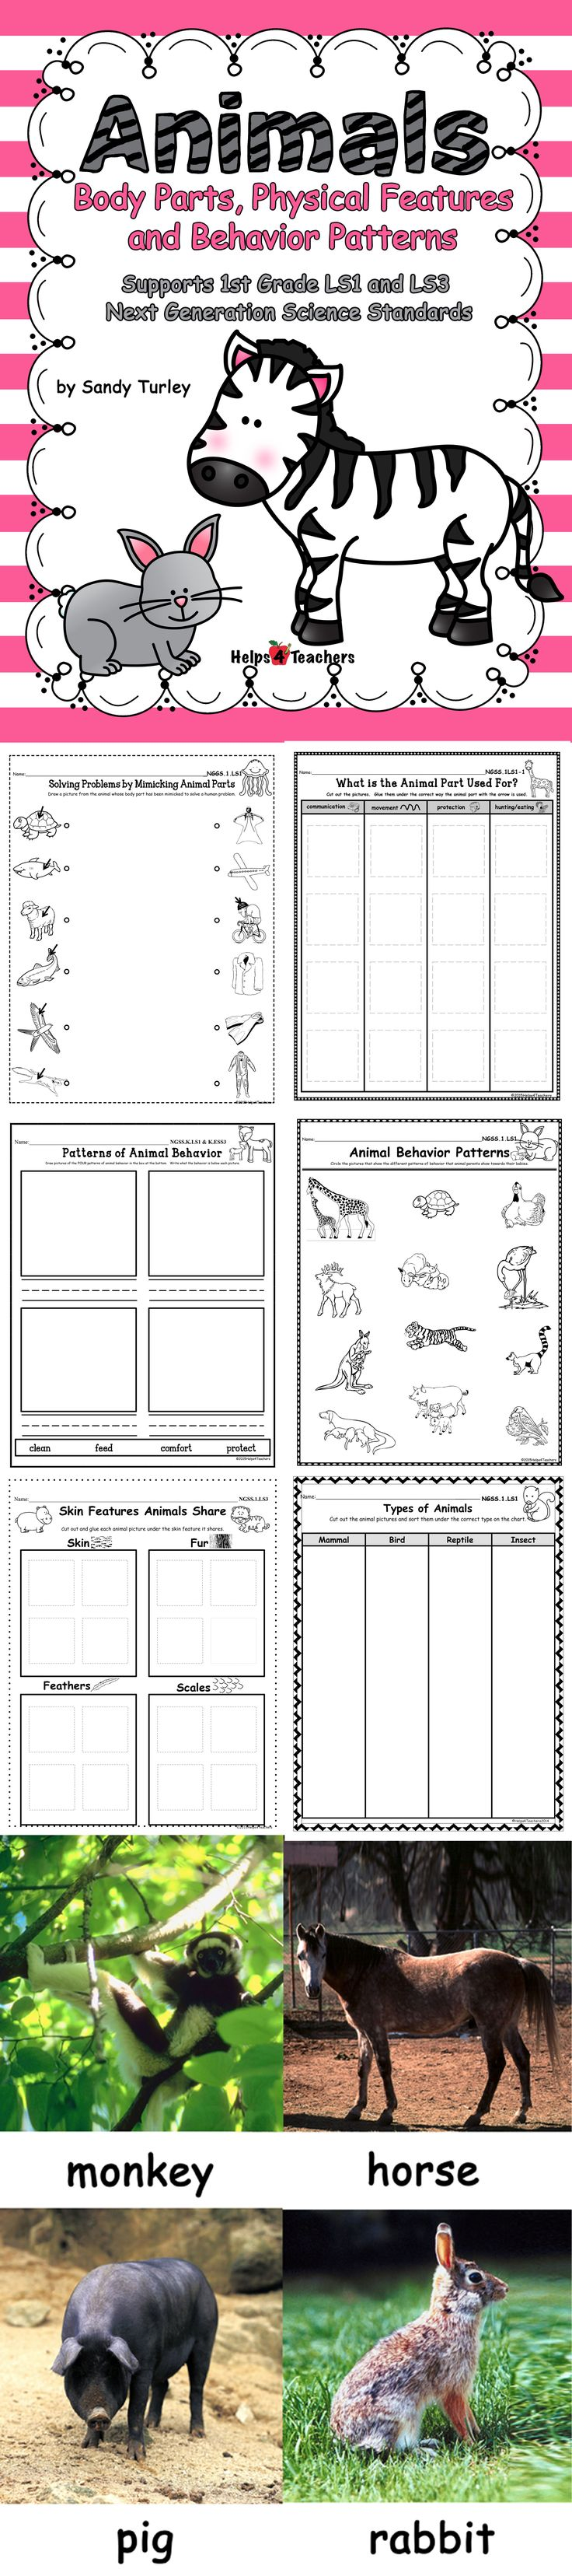 $ SPECTACULAR! 118 pages of Activity sheets and photographs needed to support lessons on Animals that support the 1st Grade Next Generation Science Standards  LS1 and LS3  Activity sheets included are:  - Solving Problems by Mimicking Animal Parts  - What is the Animal Part Used For?  - Patterns of Animal Behavior  - Animal Behavior Patterns (parents & offspring) - Skin Features Animals Share - Types of Animals (Features shared: mammal, reptile, bird, and insect